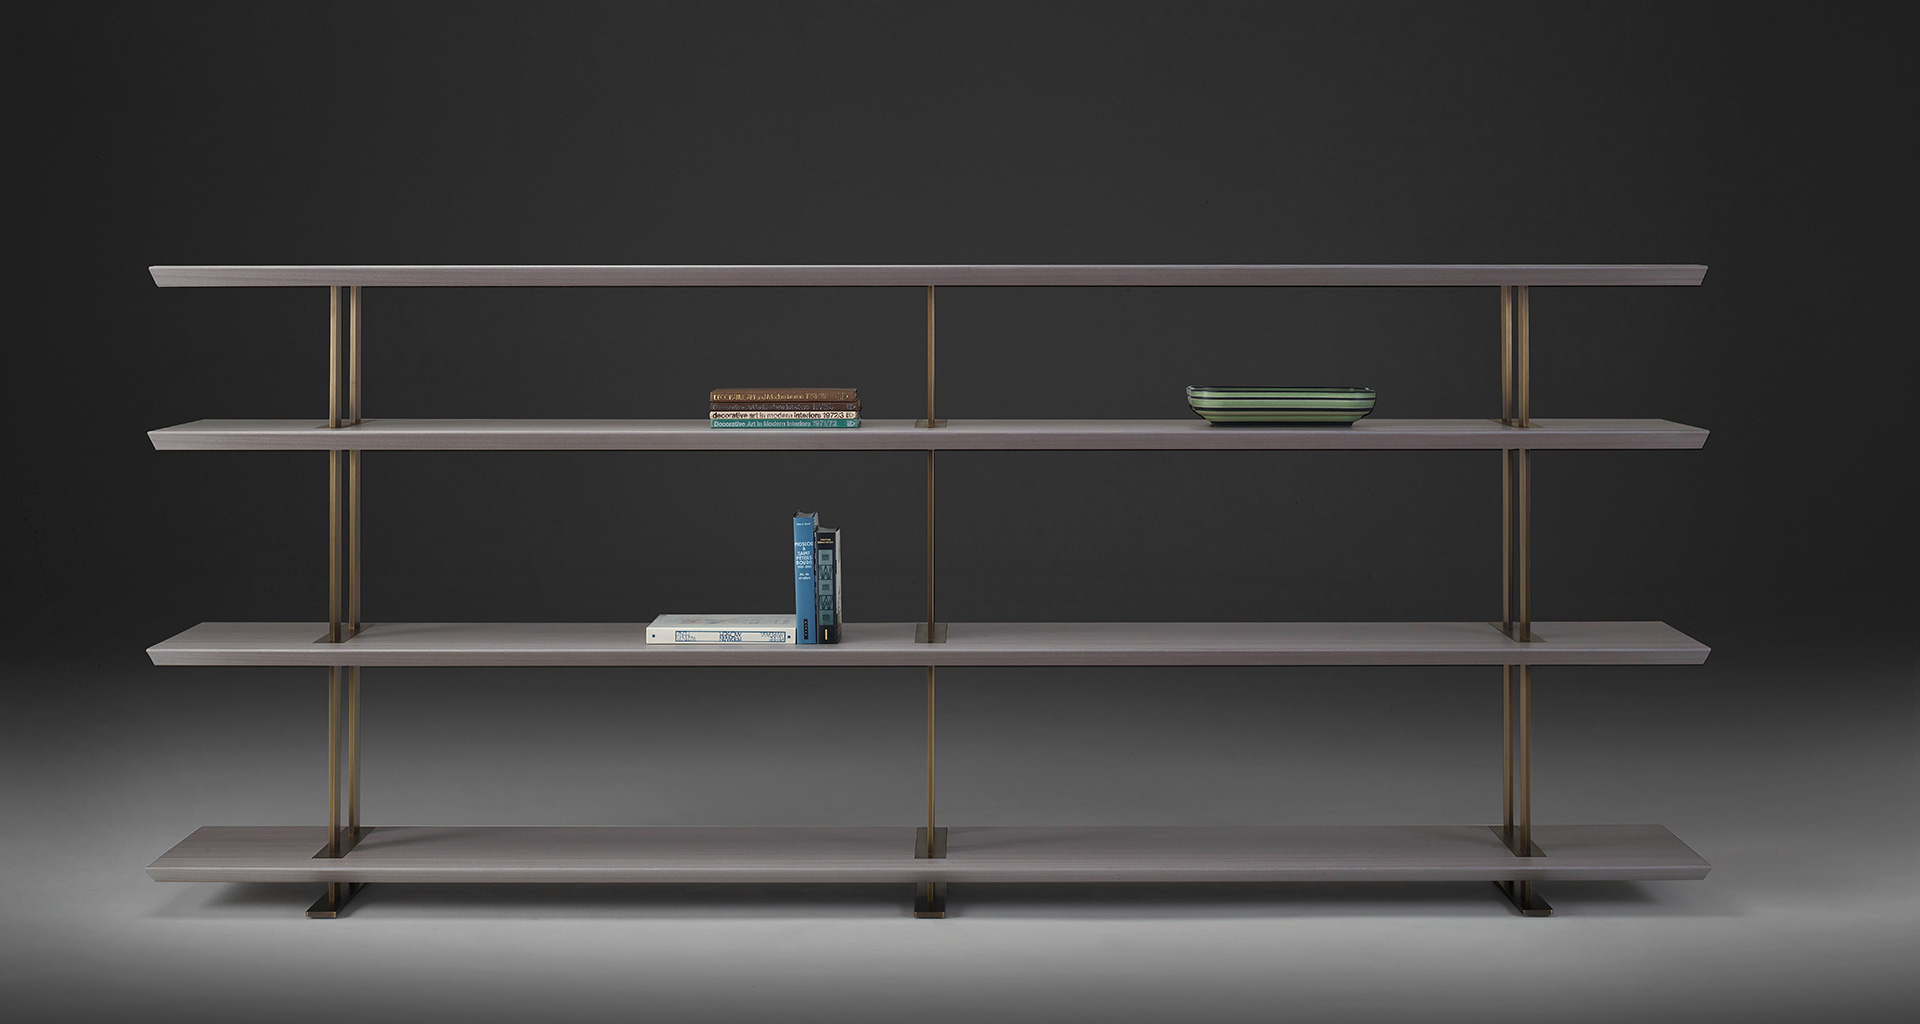 Cora modular bookcase that belongs to Indigo Tales, the 2018 Promemoria collection led by indigo color and presented during the Milan Design Week | Promemoria